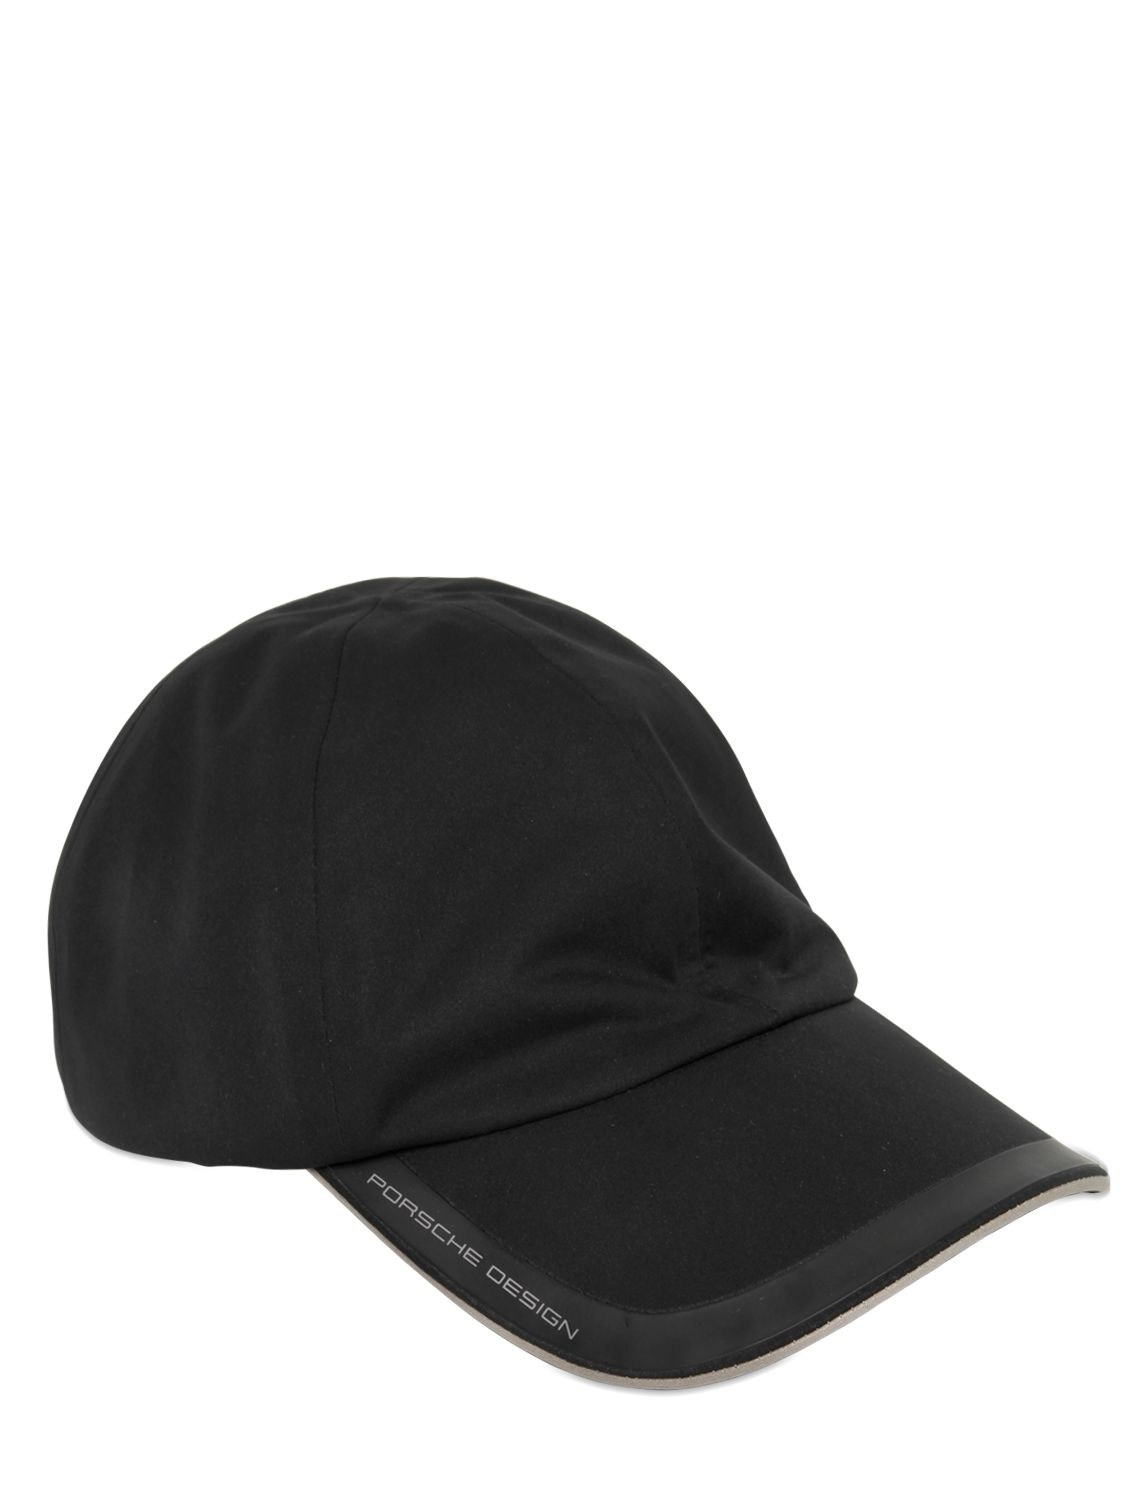 de18a28d2b977 Porsche Design Waterproof Baseball Hat in Black for Men - Lyst